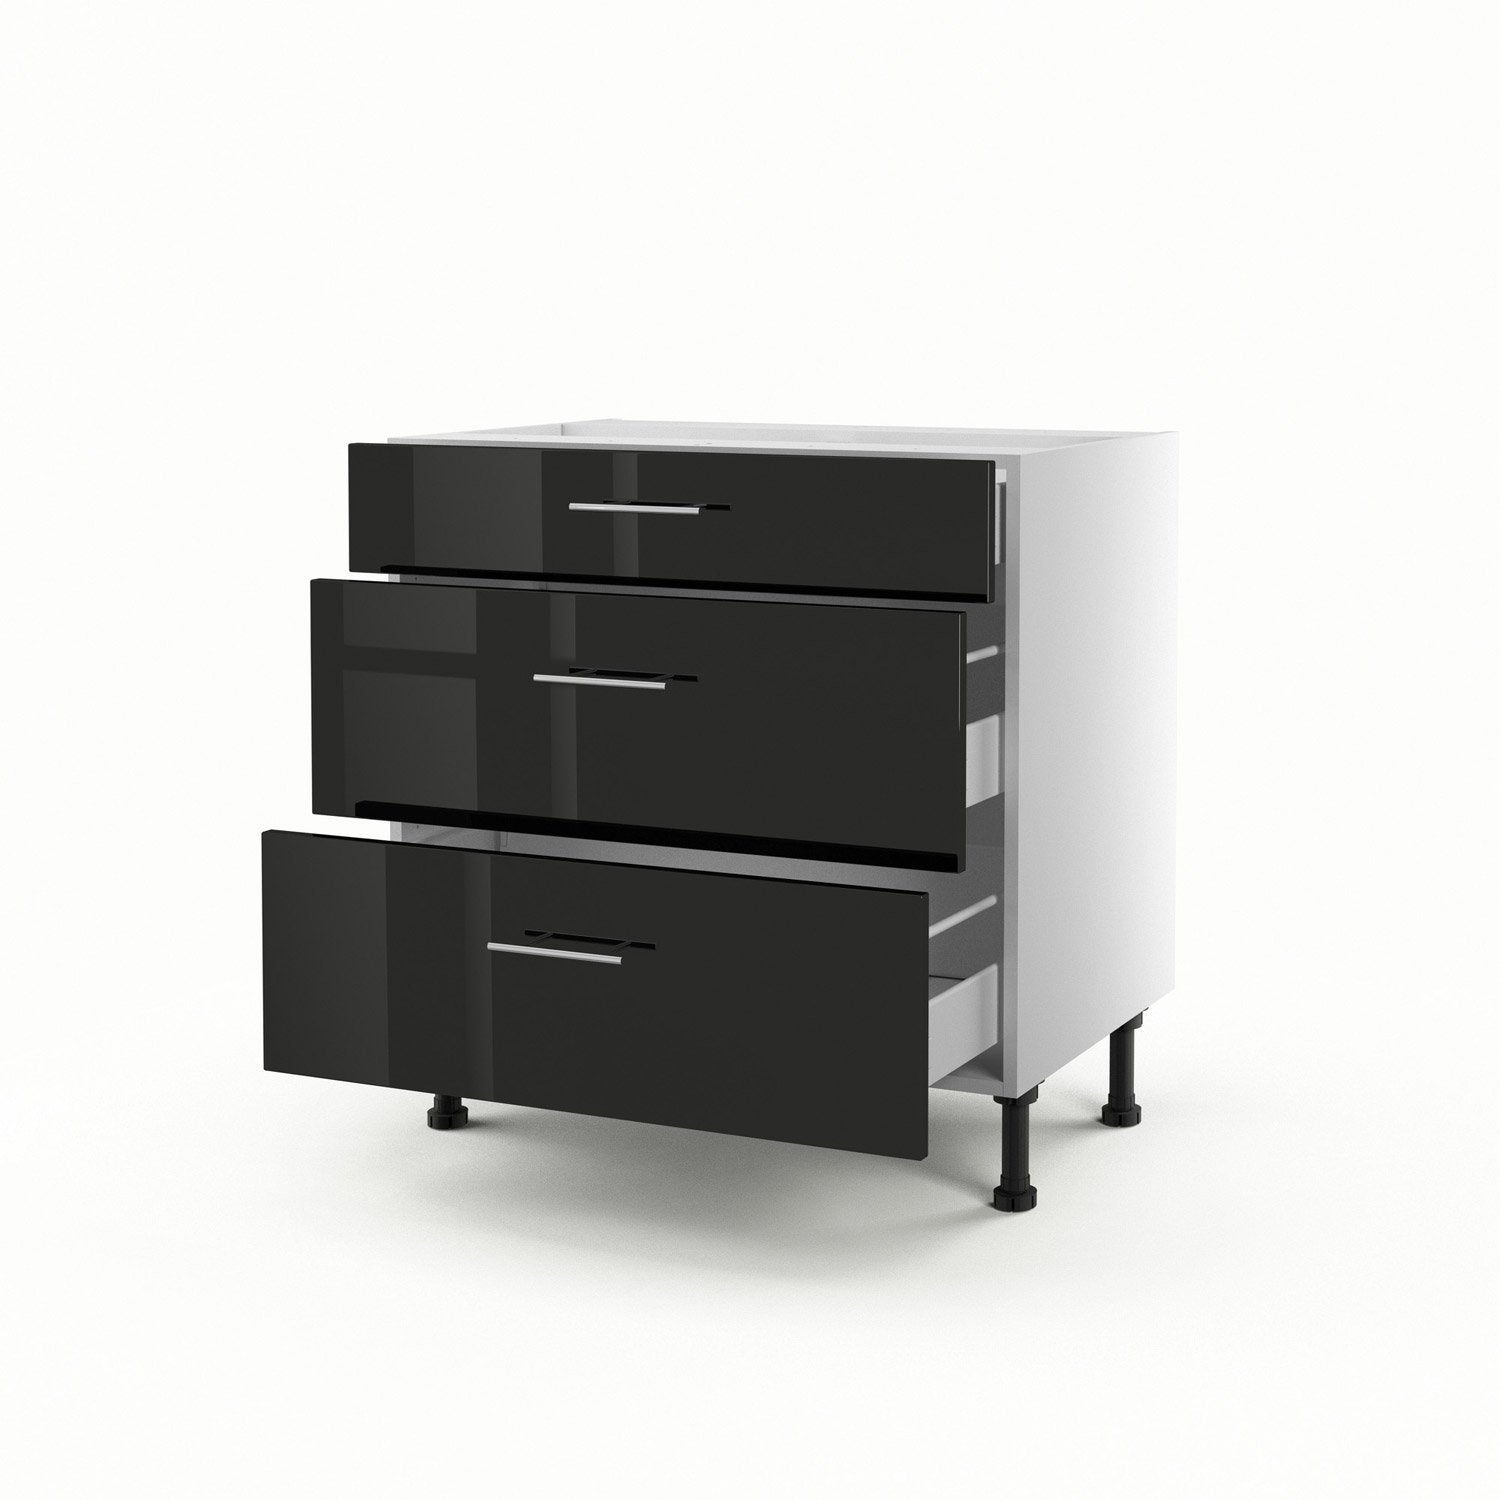 meuble de cuisine bas noir 3 tiroirs rio x x p. Black Bedroom Furniture Sets. Home Design Ideas